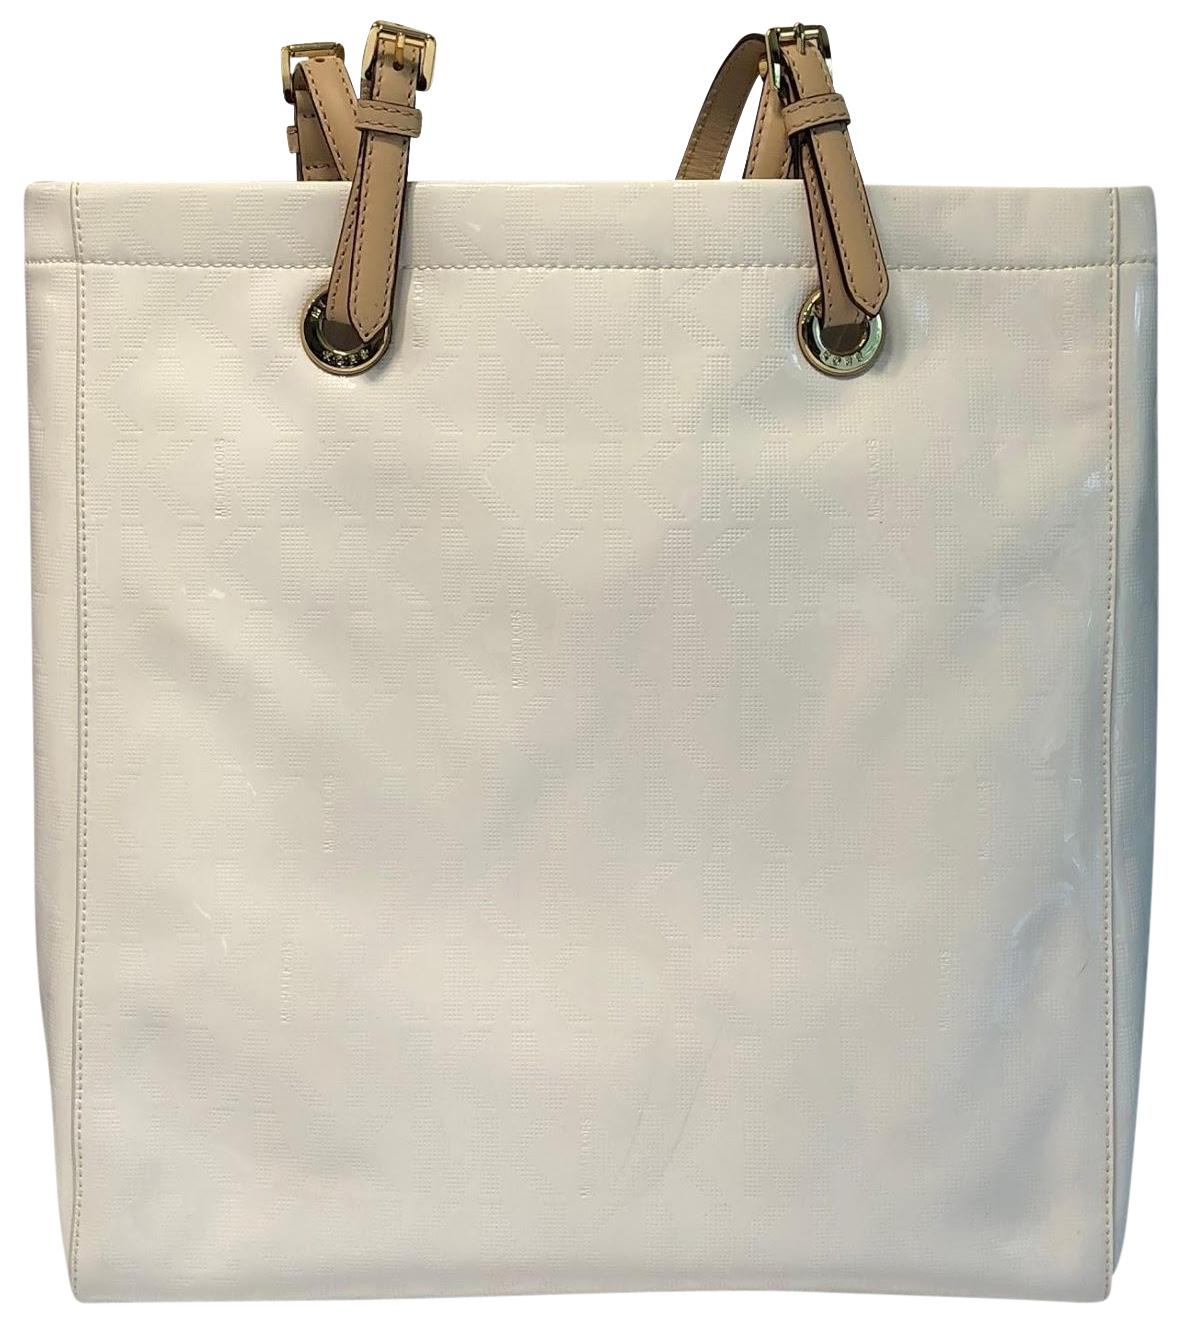 bb94c9ed102d ... free shipping michael kors jet set north south tote mirror metallic  satchel in white signature mk